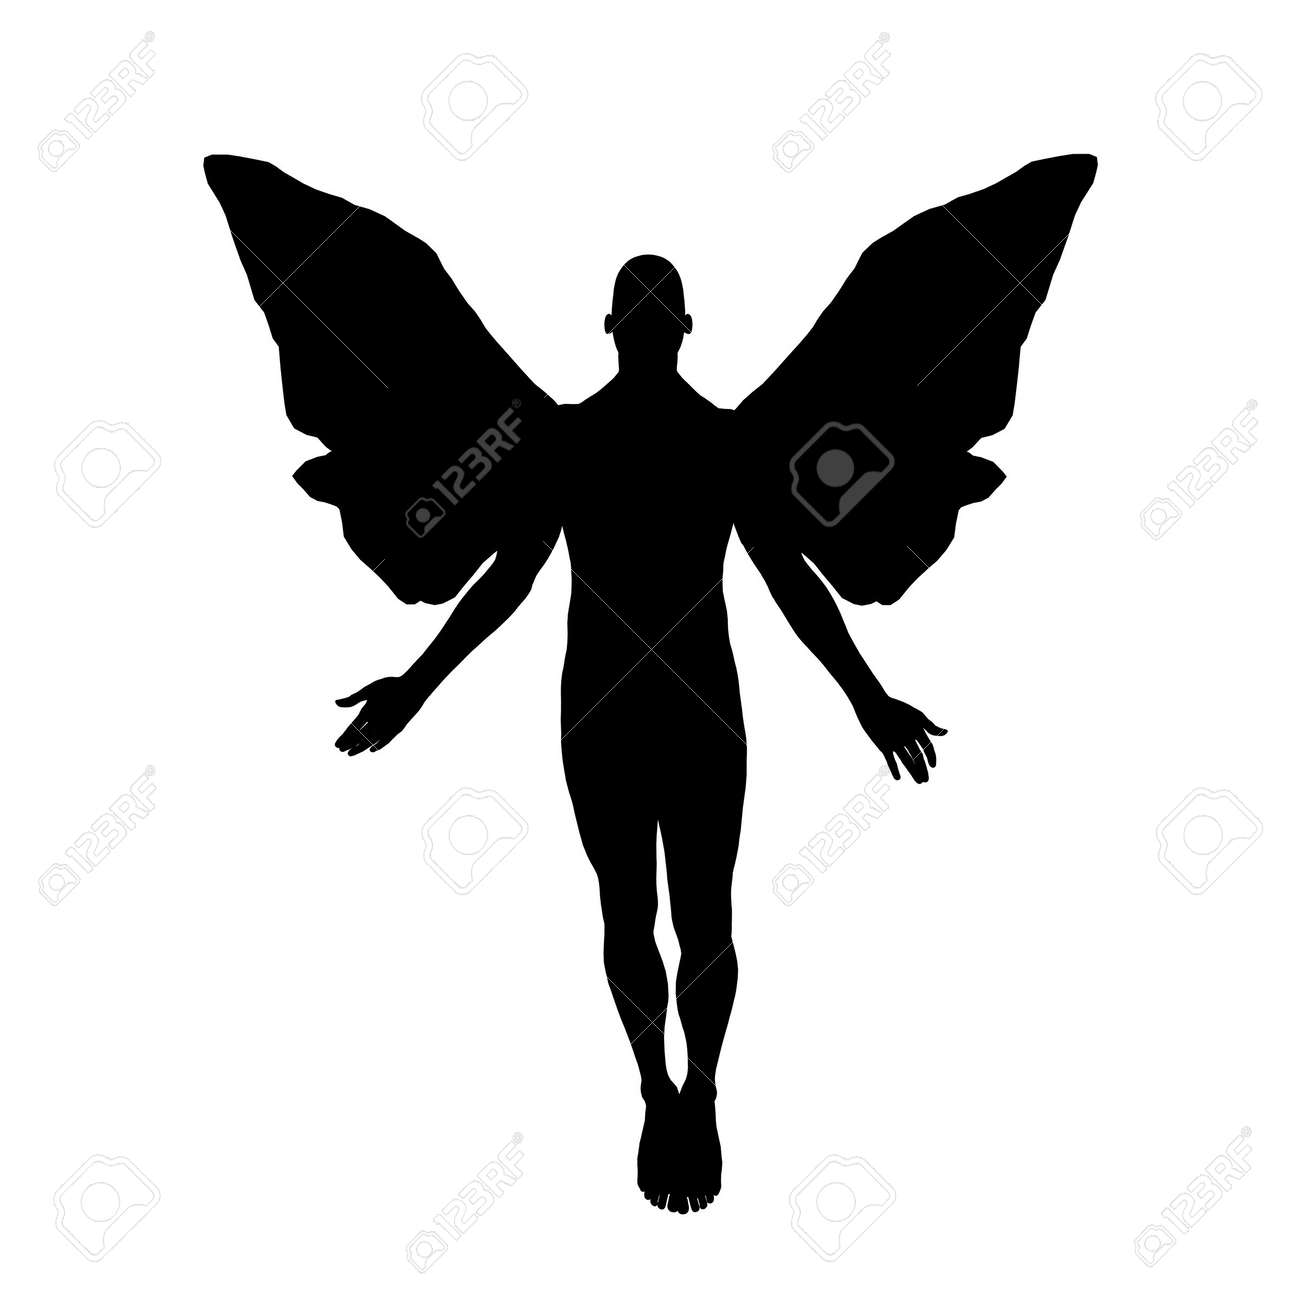 Silhouette of a male angel floating toward heaven. Stock Photo - 483305